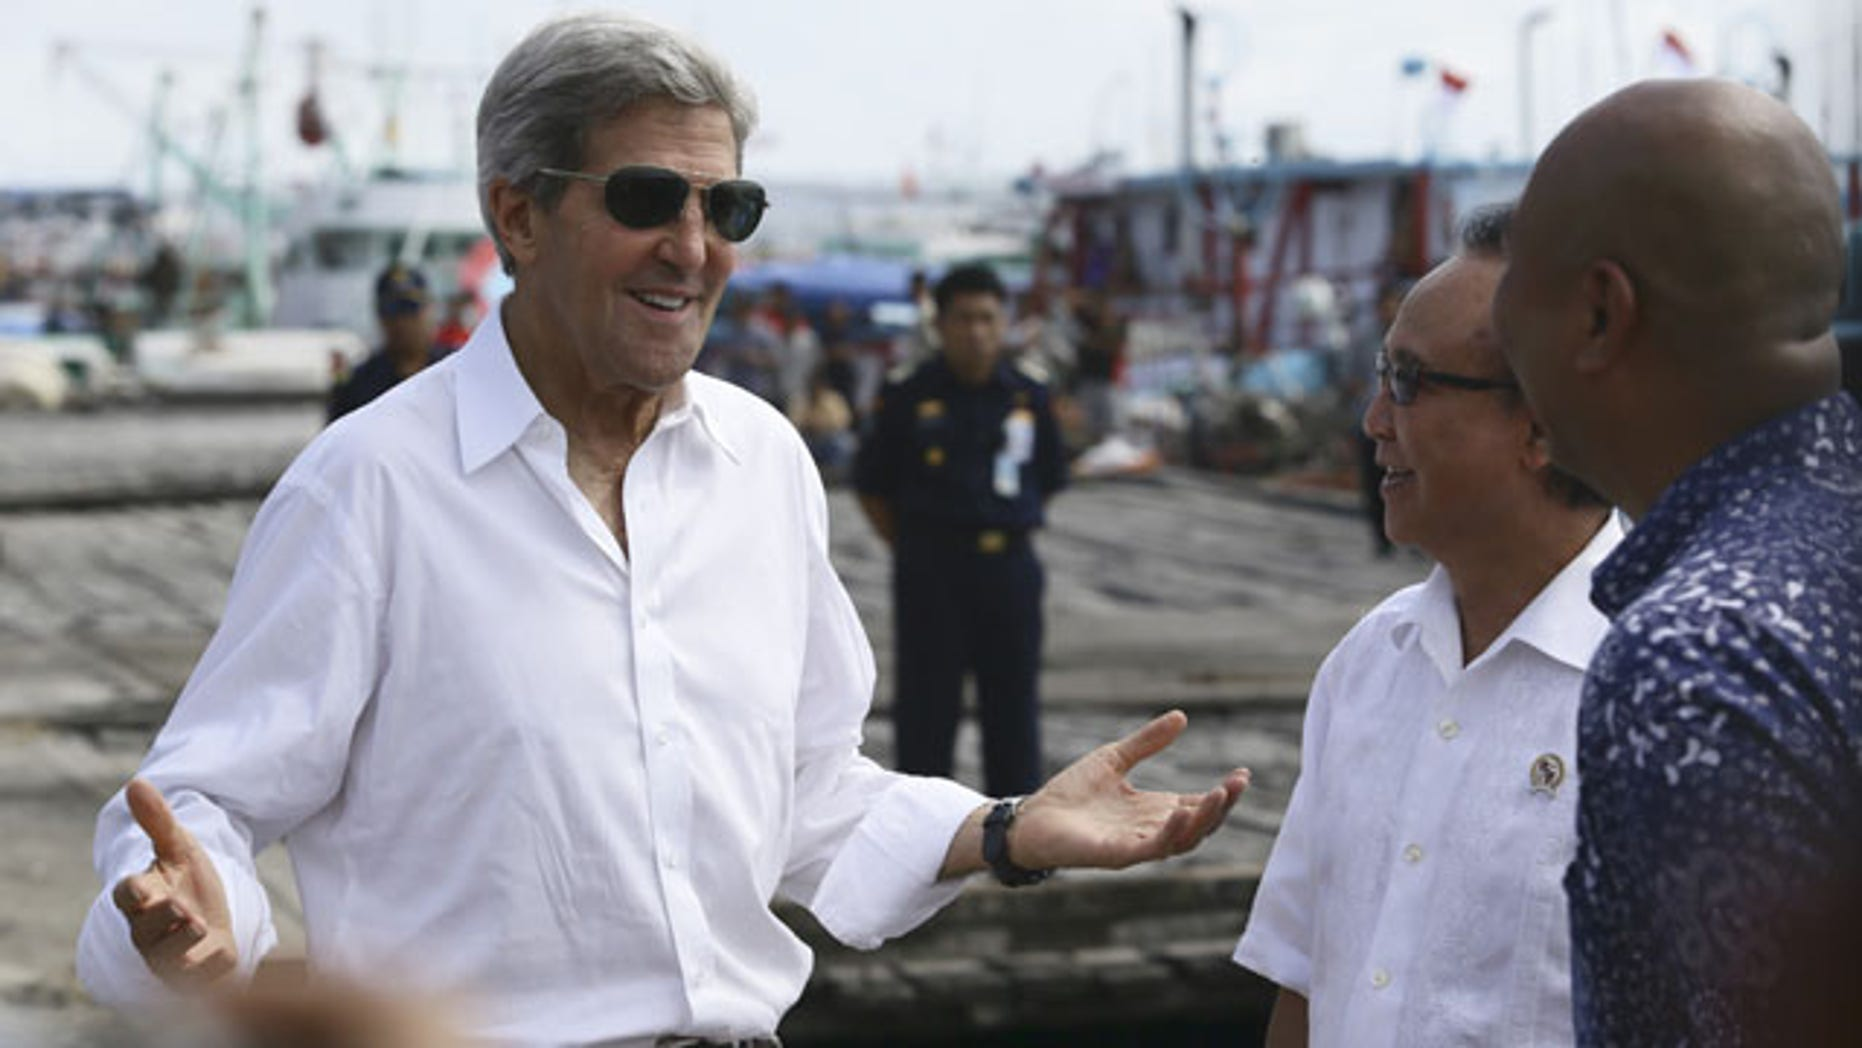 October 6, 2013: U.S. Secretary of State John Kerry speaks to officials during a visit to a tuna packaging factory in Bali, Indonesia. (AP Photo)